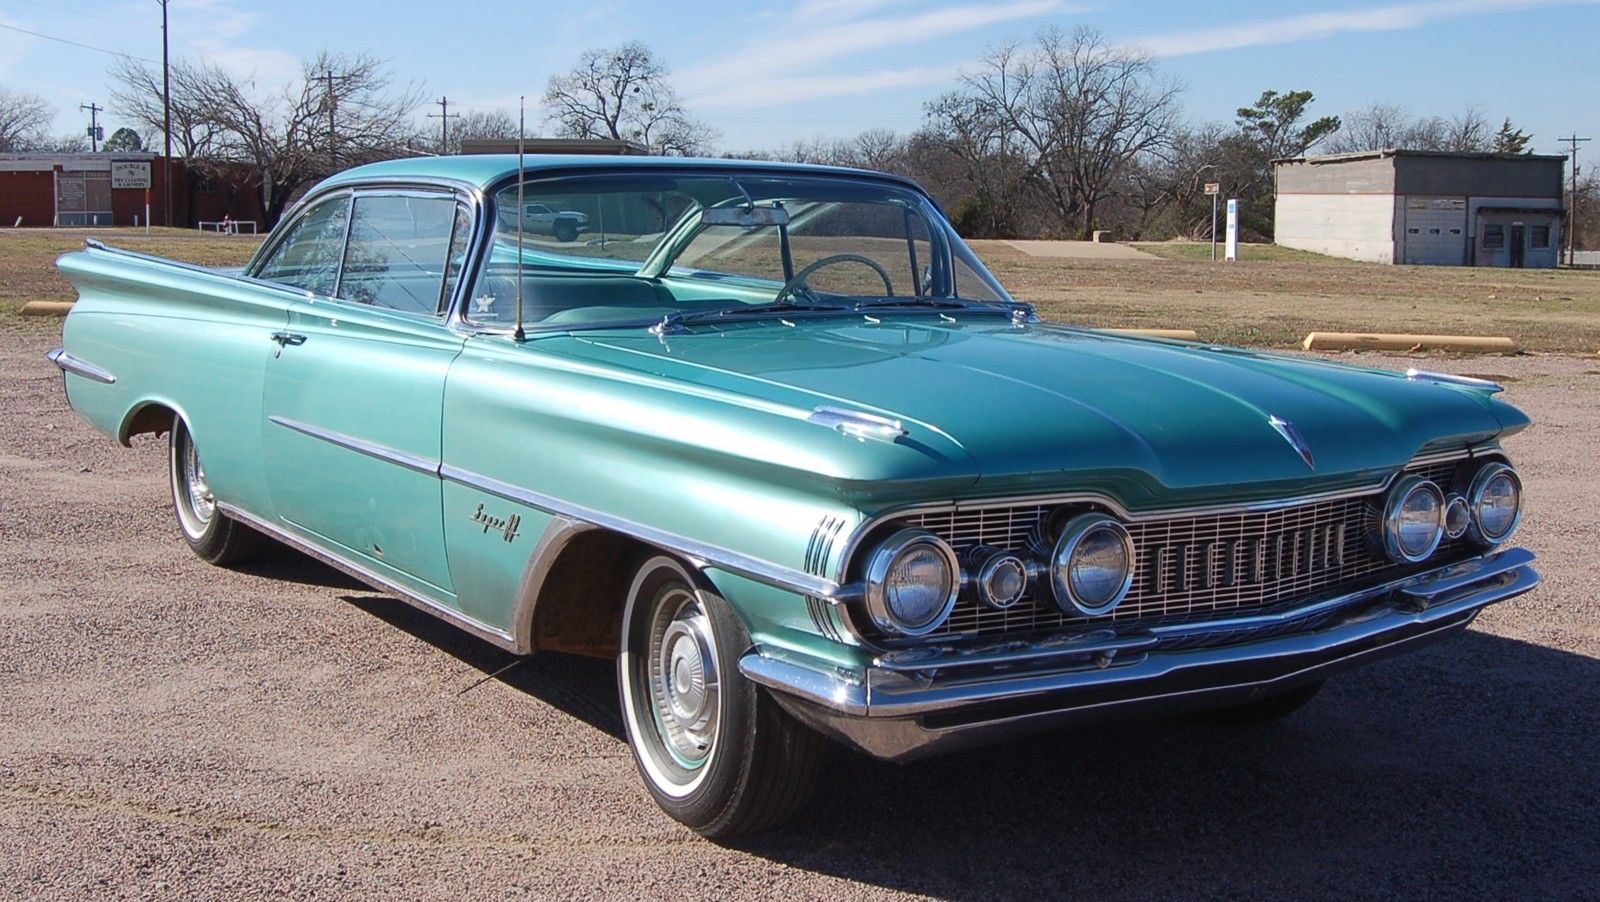 1959 Olds Super 88 394 V 8 Automatic Rebuilt Power